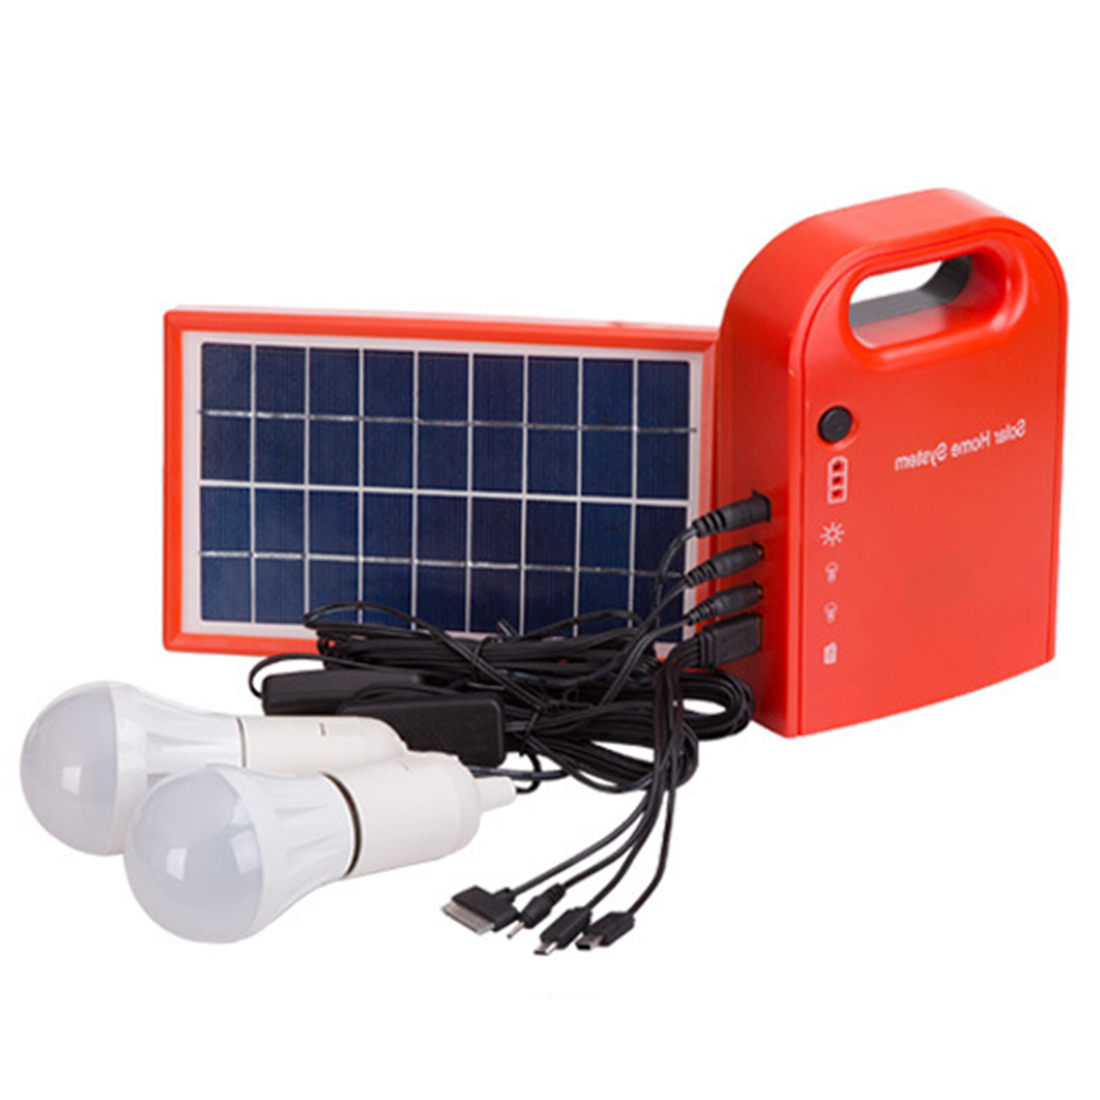 SOPATiO Household Power Photovoltaic Generator Solar Panel System Solar Lamp Battery Charger Cable Emergency Lighting System 2015 1400w mini home solar power system off grid solar battery charger system 4 120 w solar panel for phone lighting sfps1311a